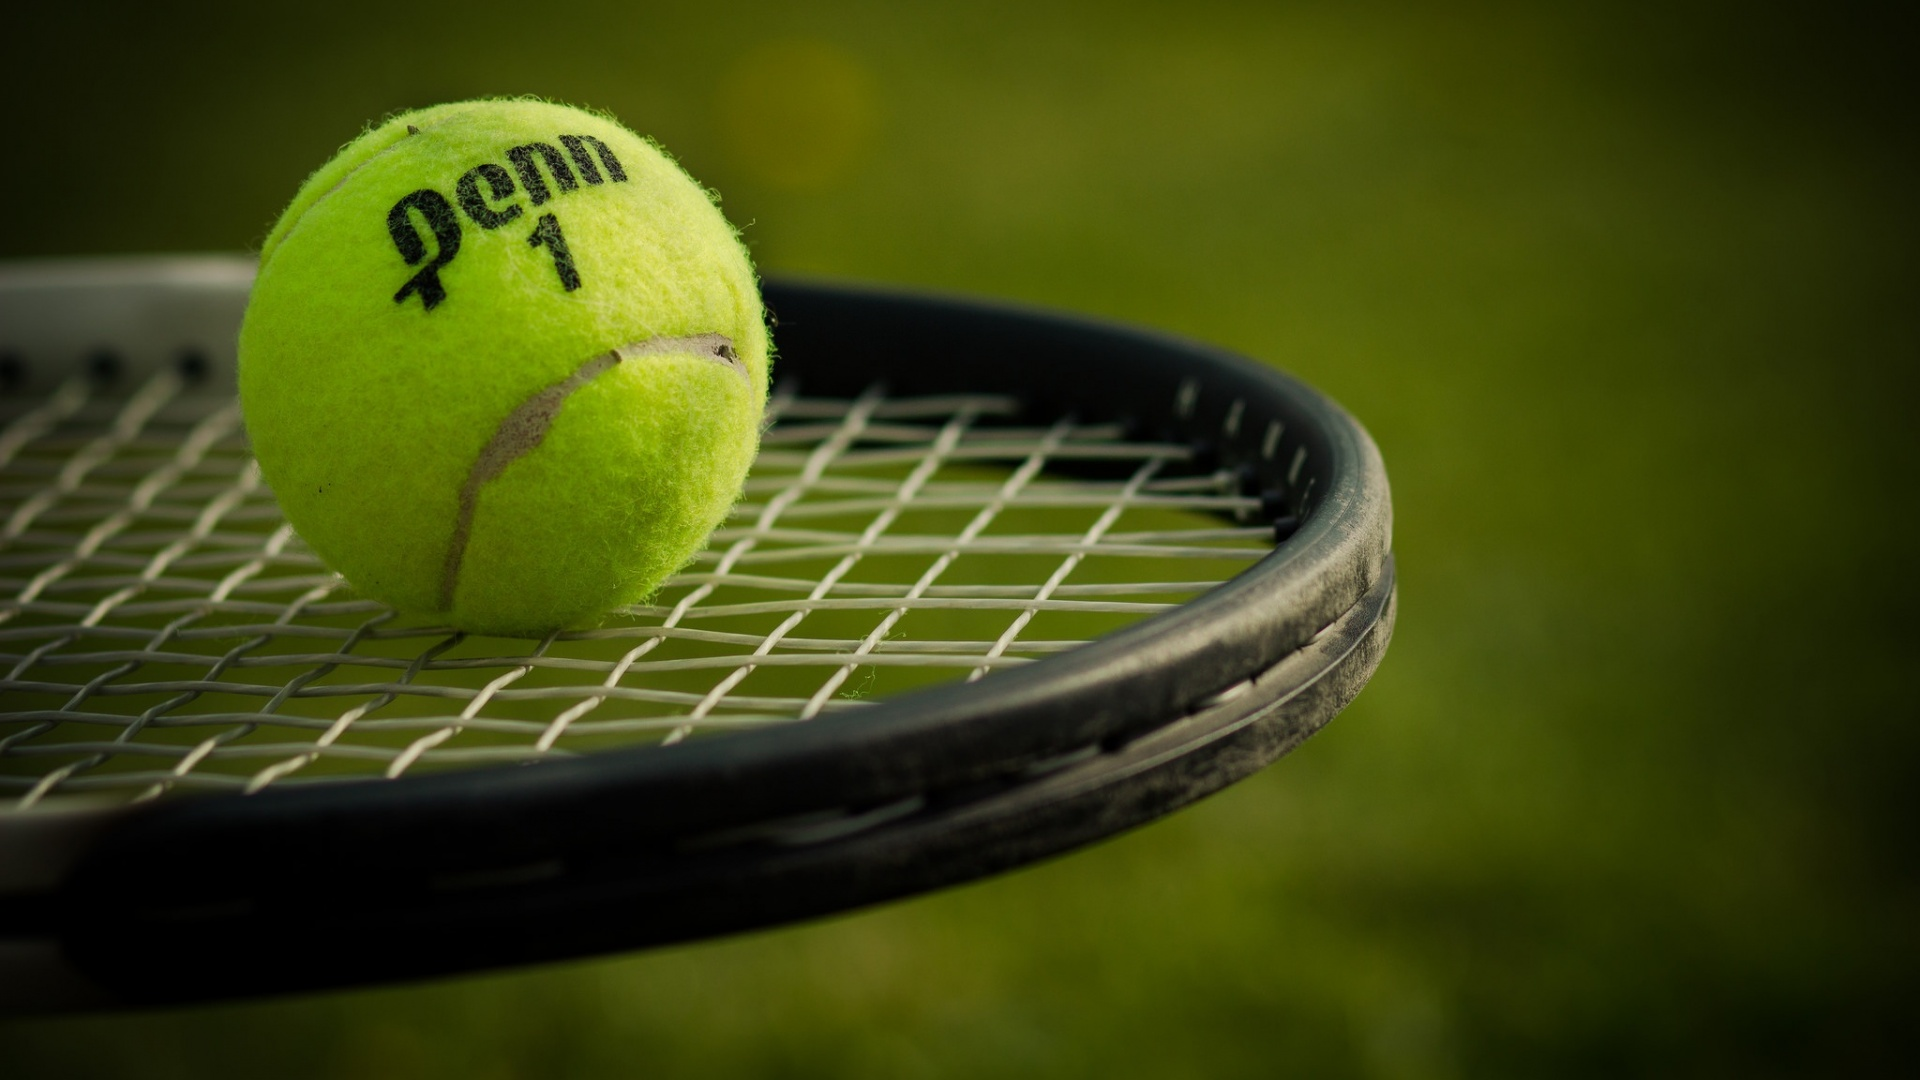 Tennis Ball And Racket Sports Wallpapers